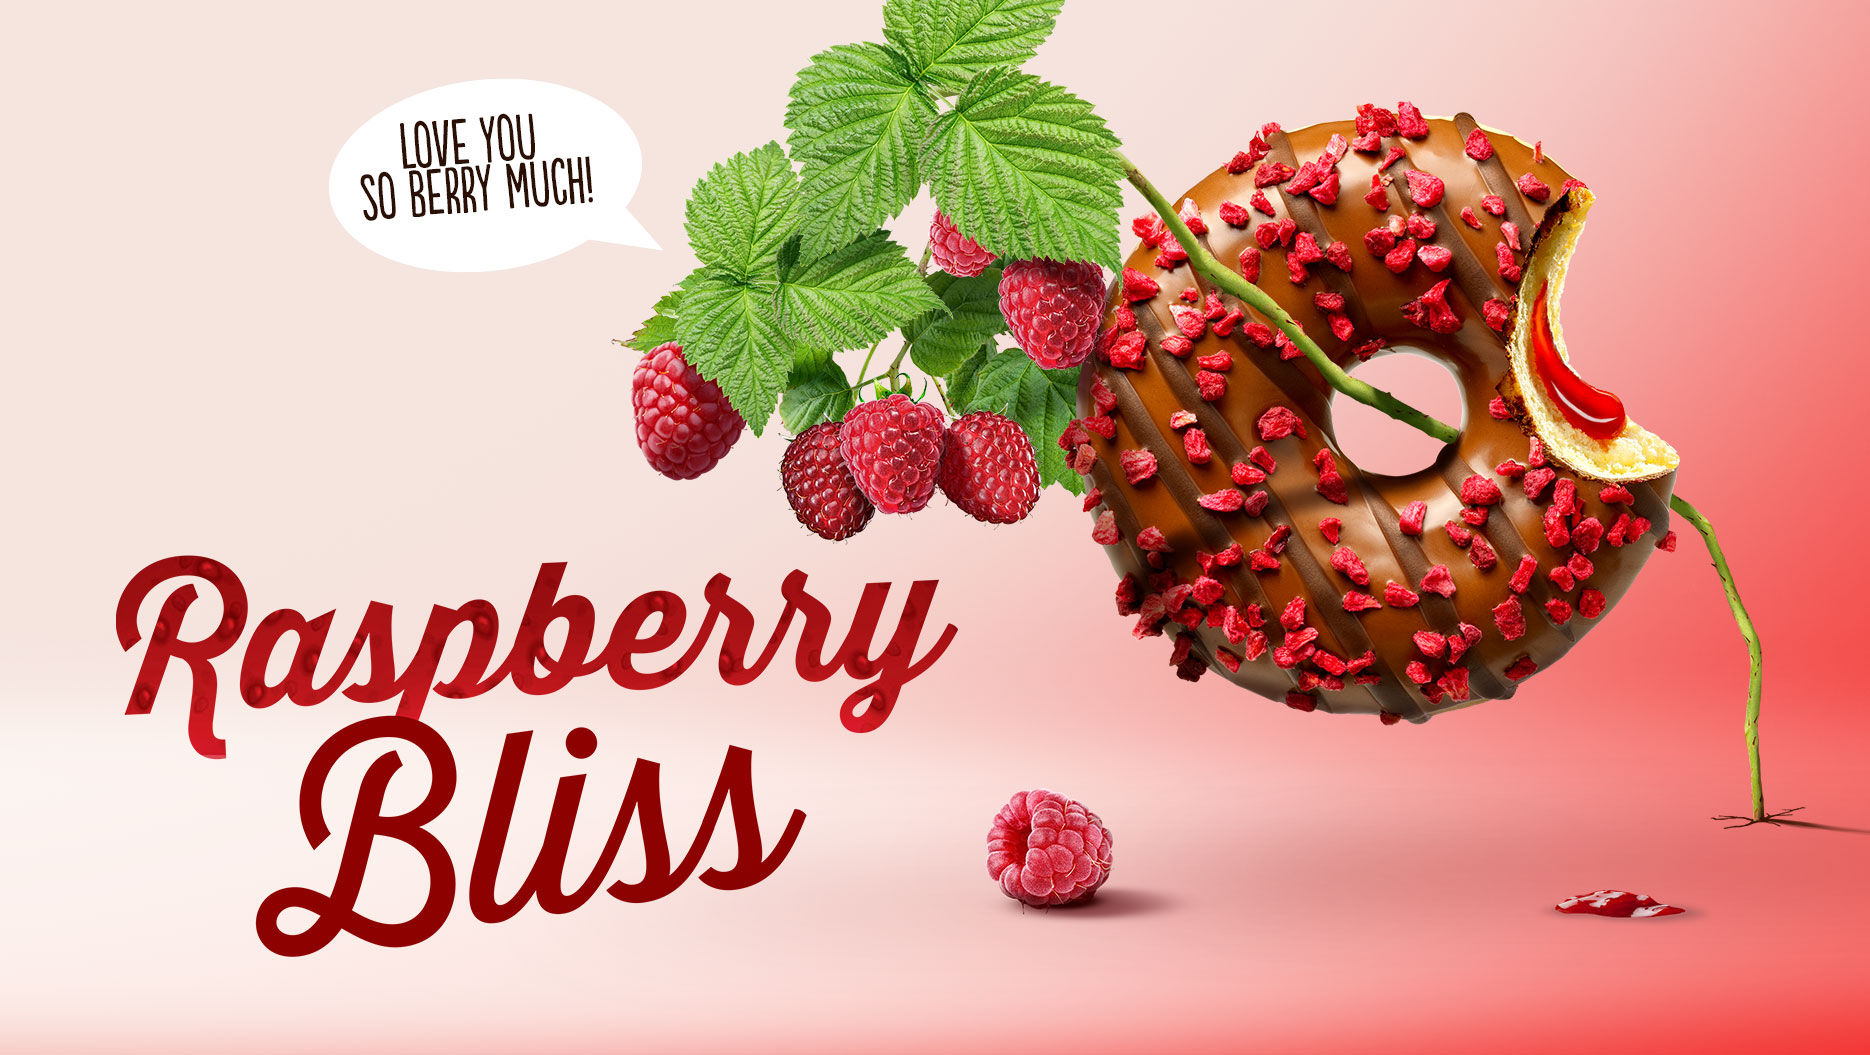 DNWBH-product-detail-top-of-bites-raspberry-bliss.jpg